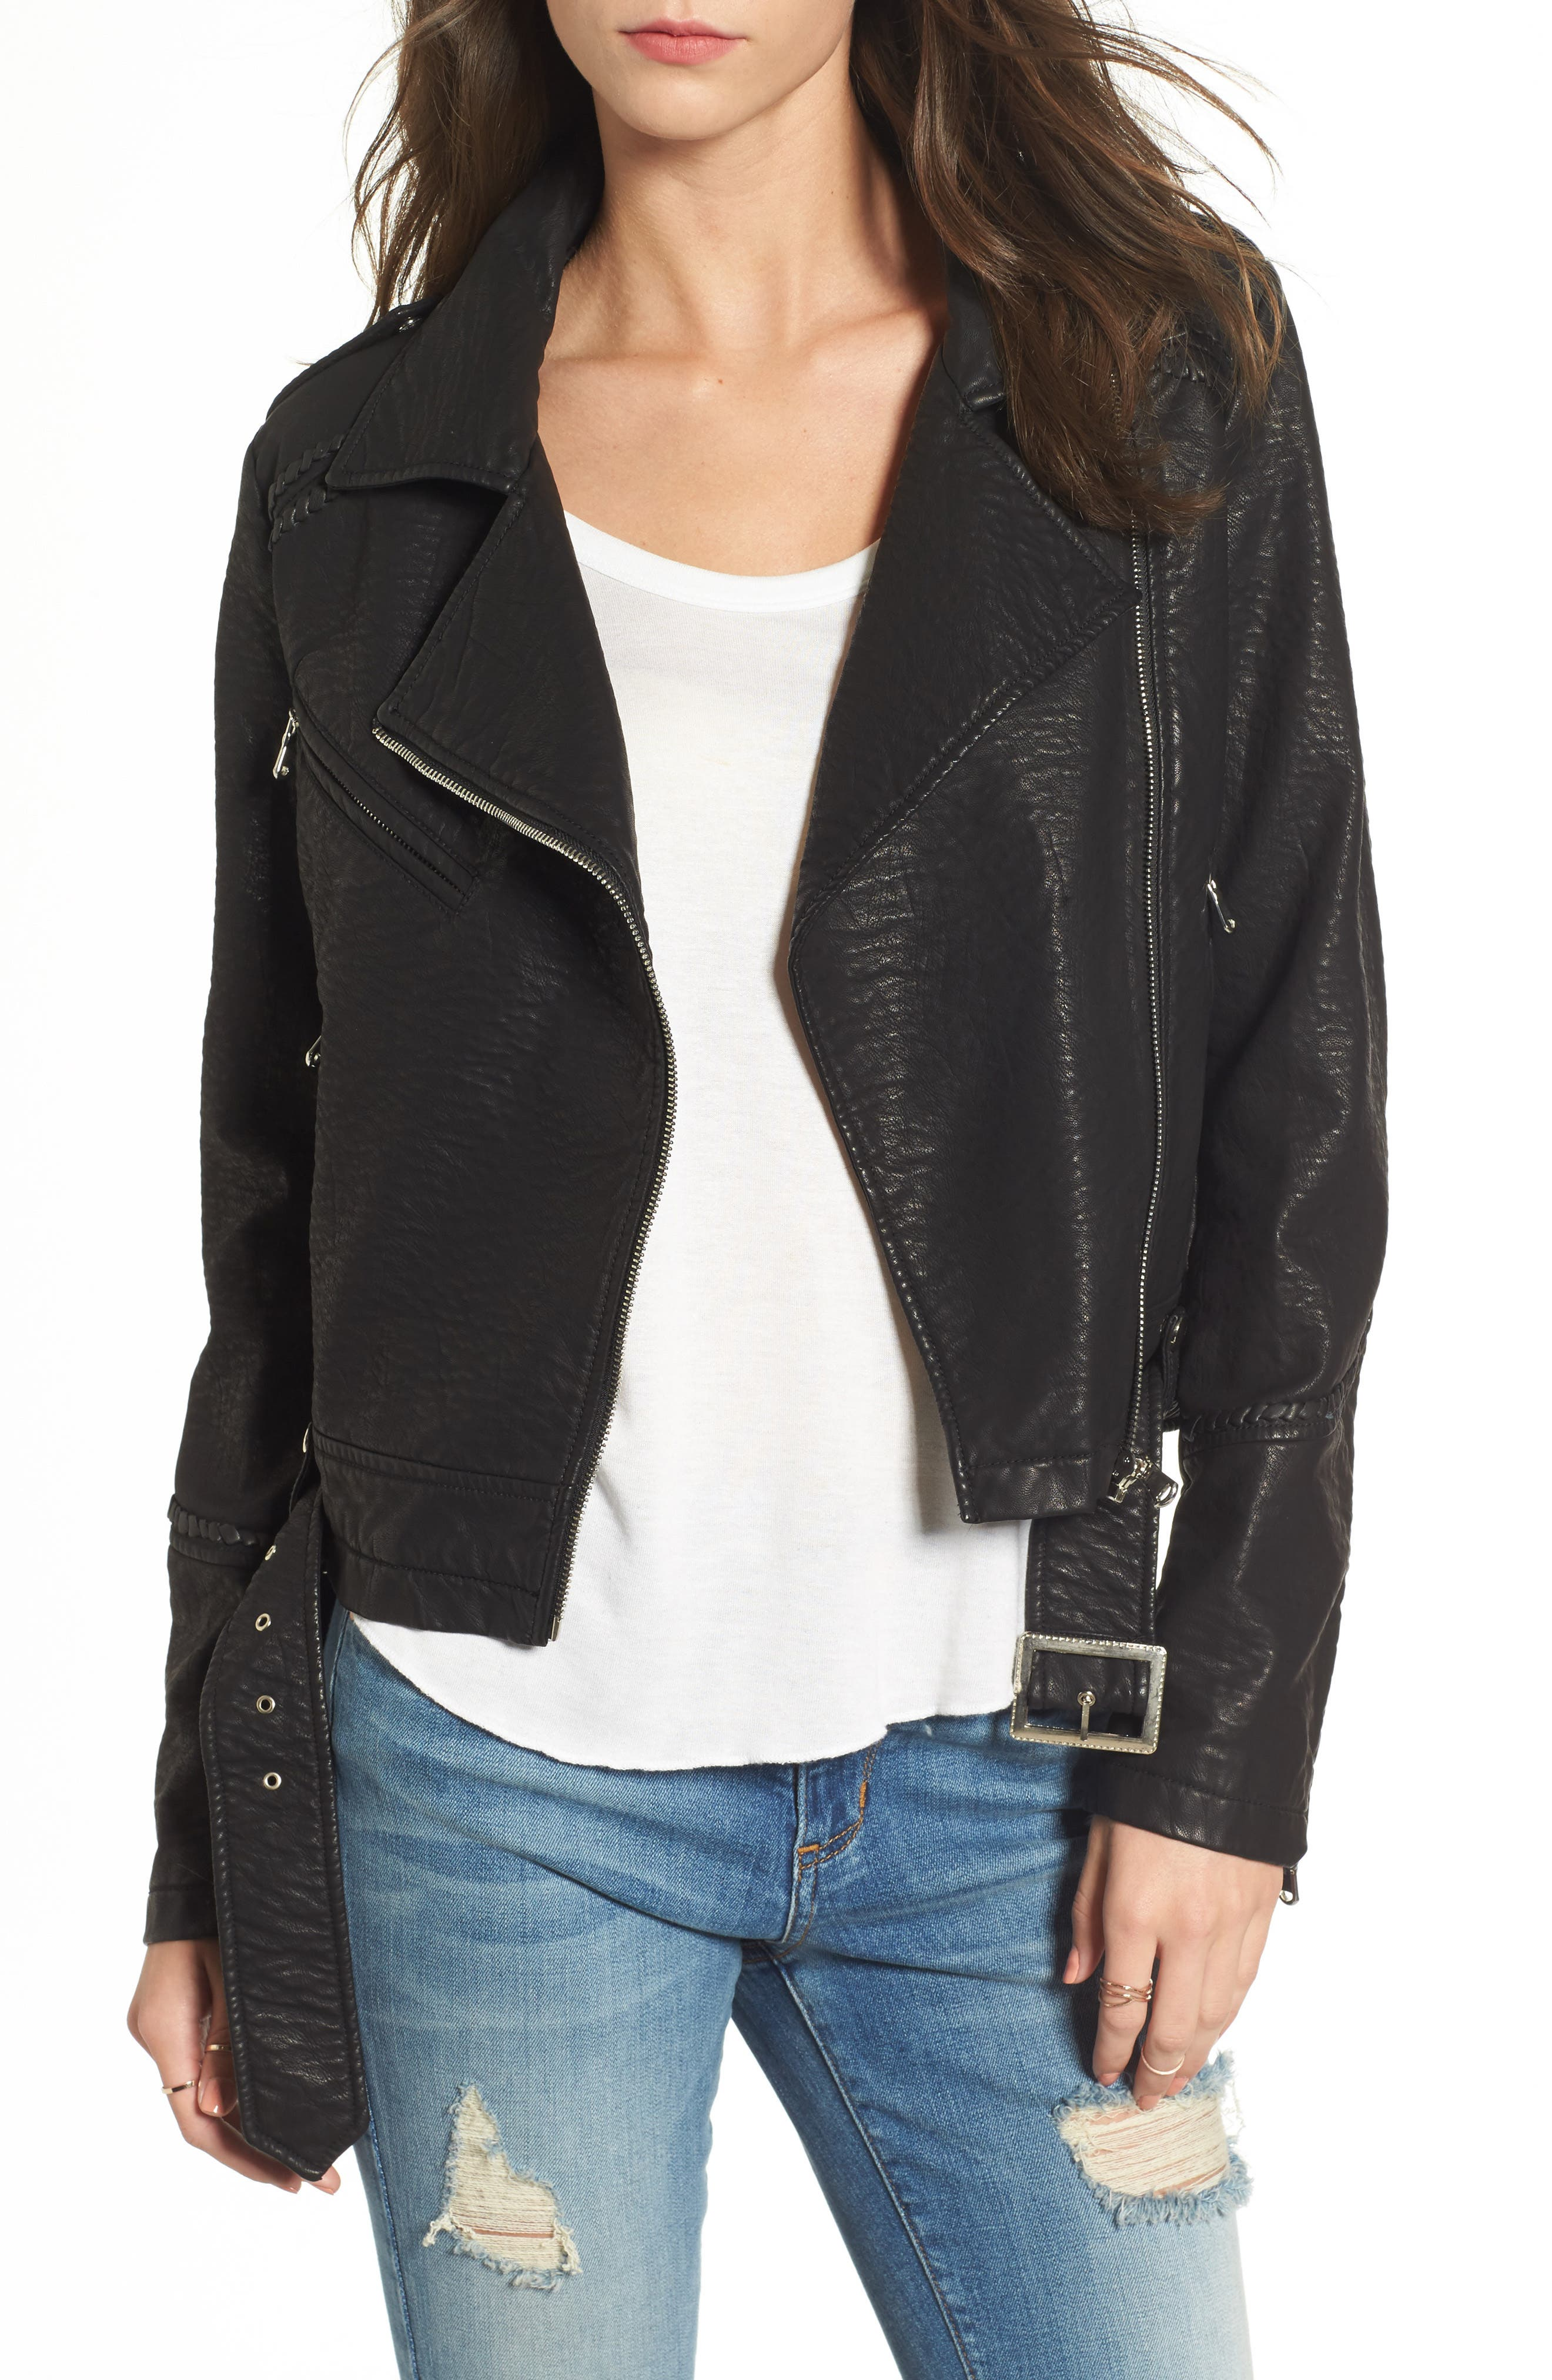 Alternate Image 1 Selected - Lira Clothing Furthermore Faux Leather Jacket